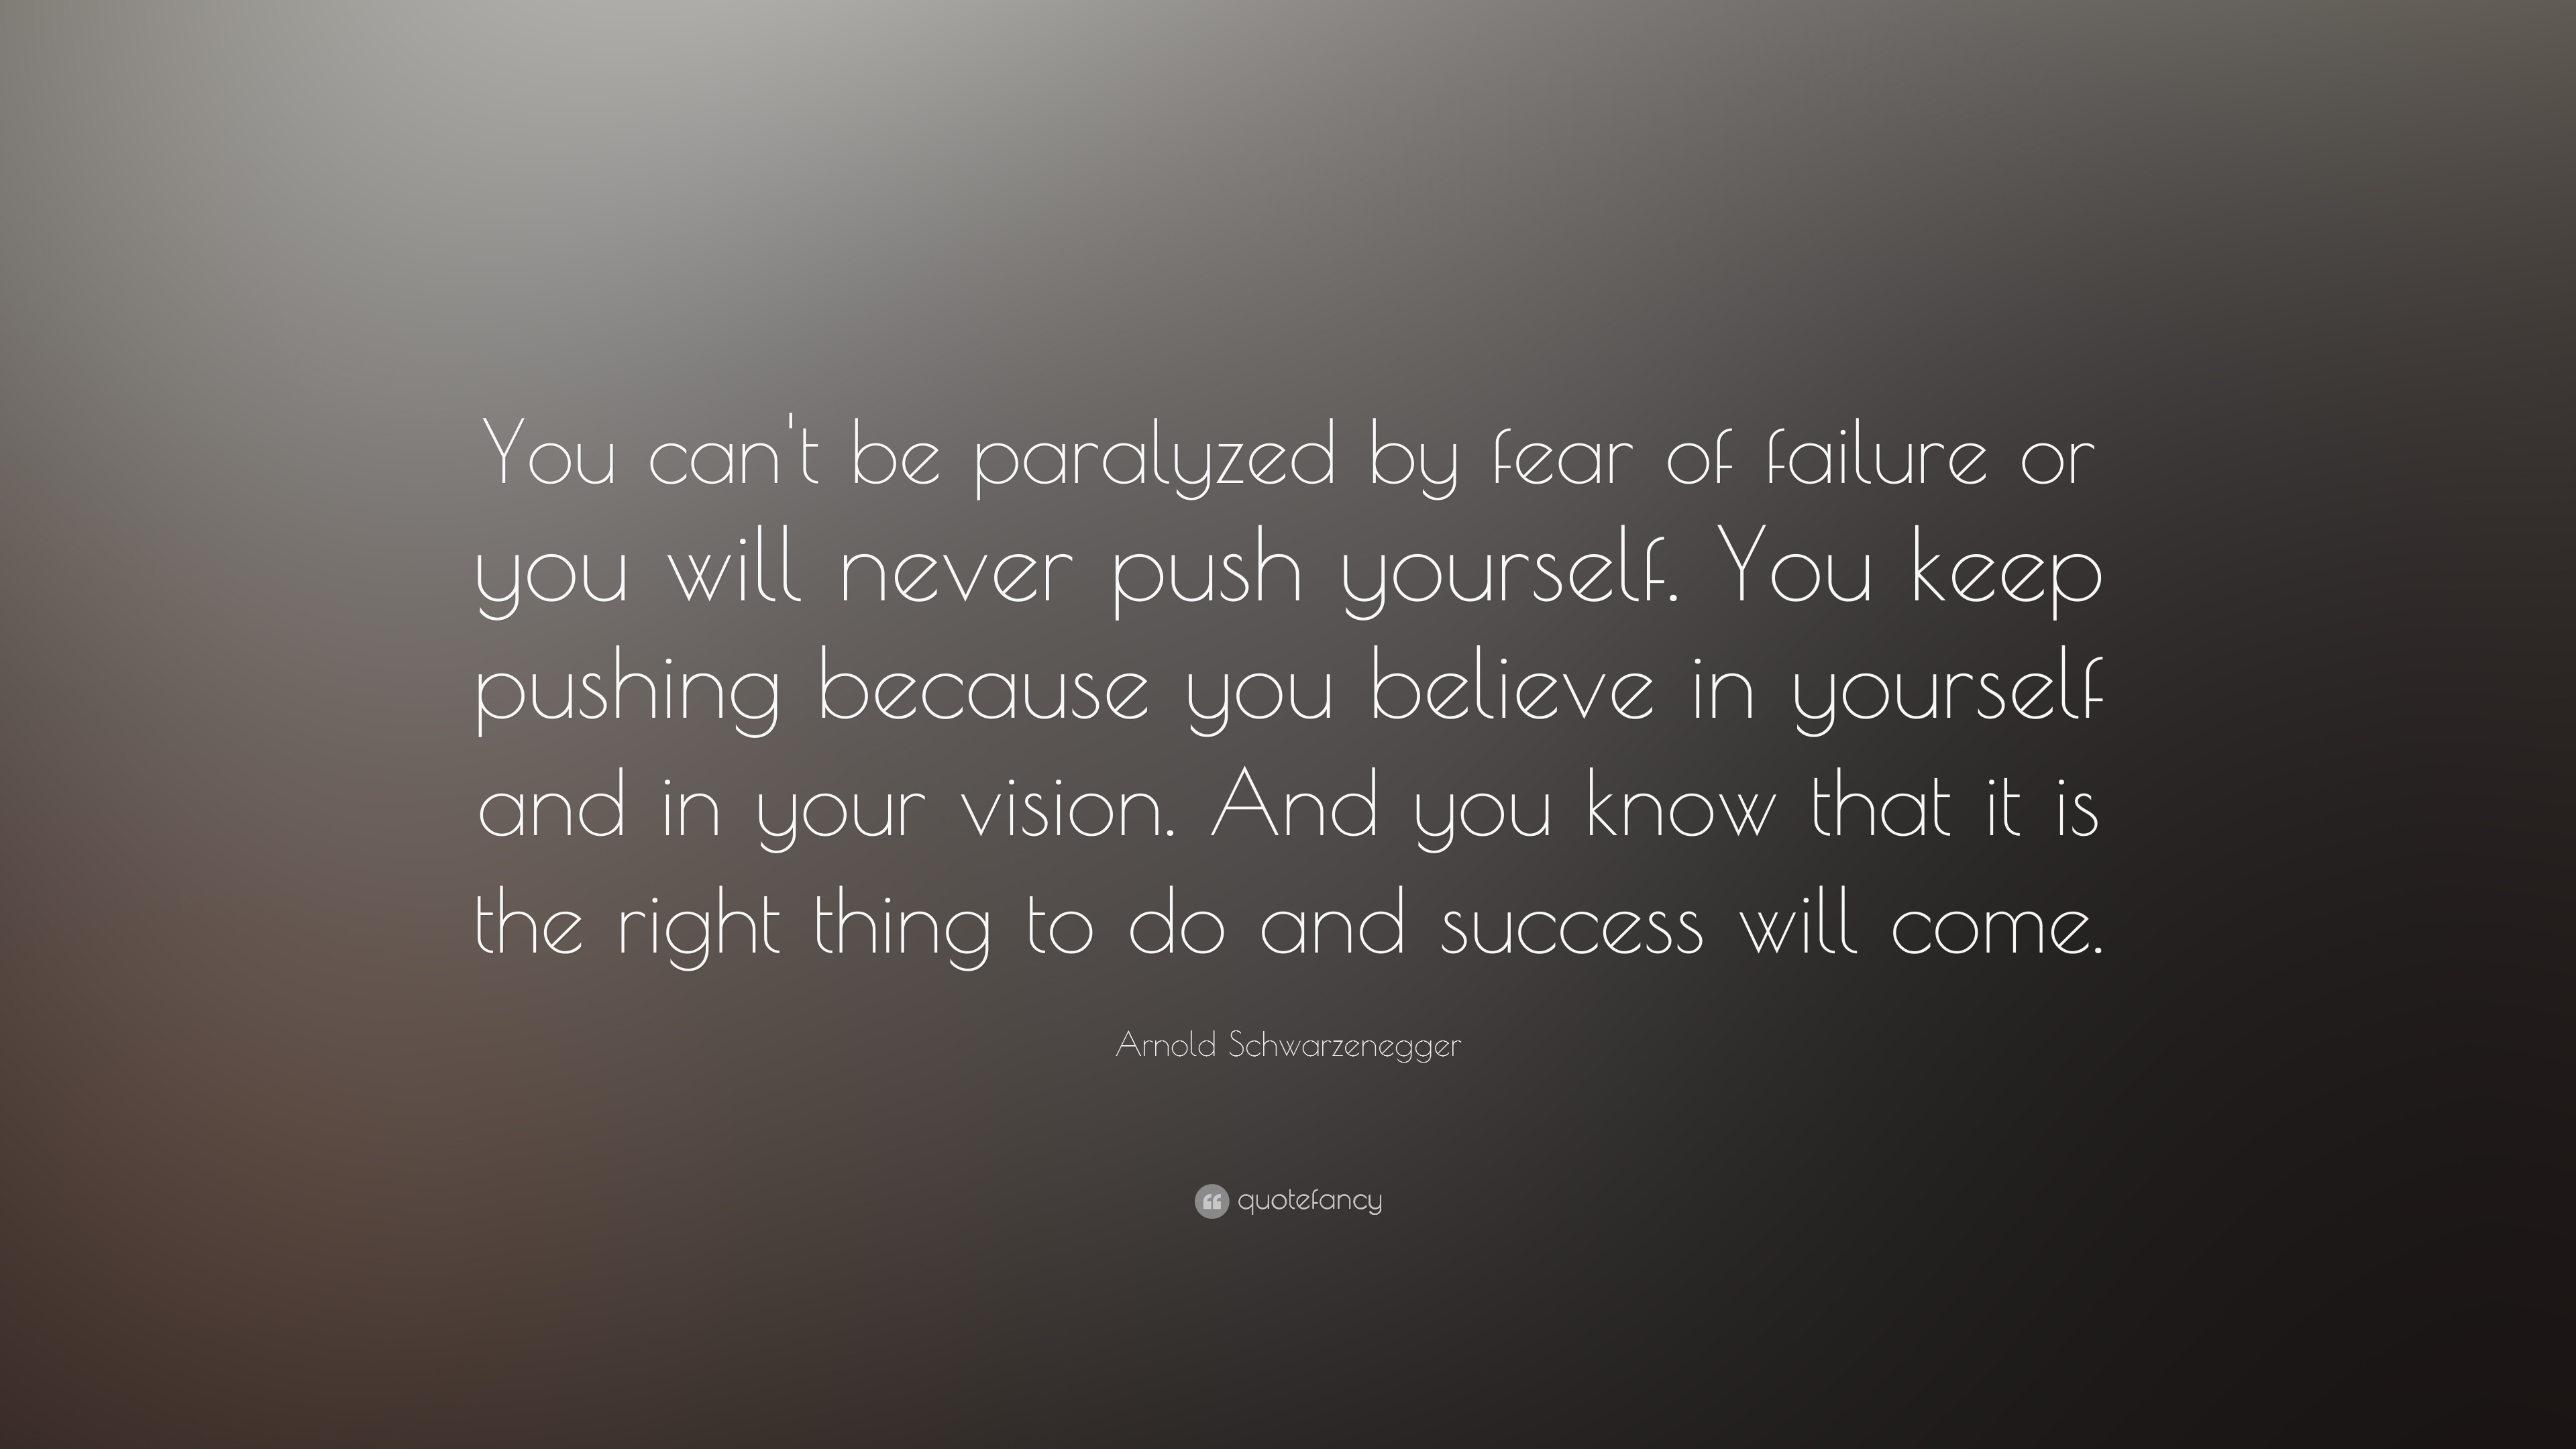 Arnold Schwarzenegger Quote You Cant Be Paralyzed By Fear Of